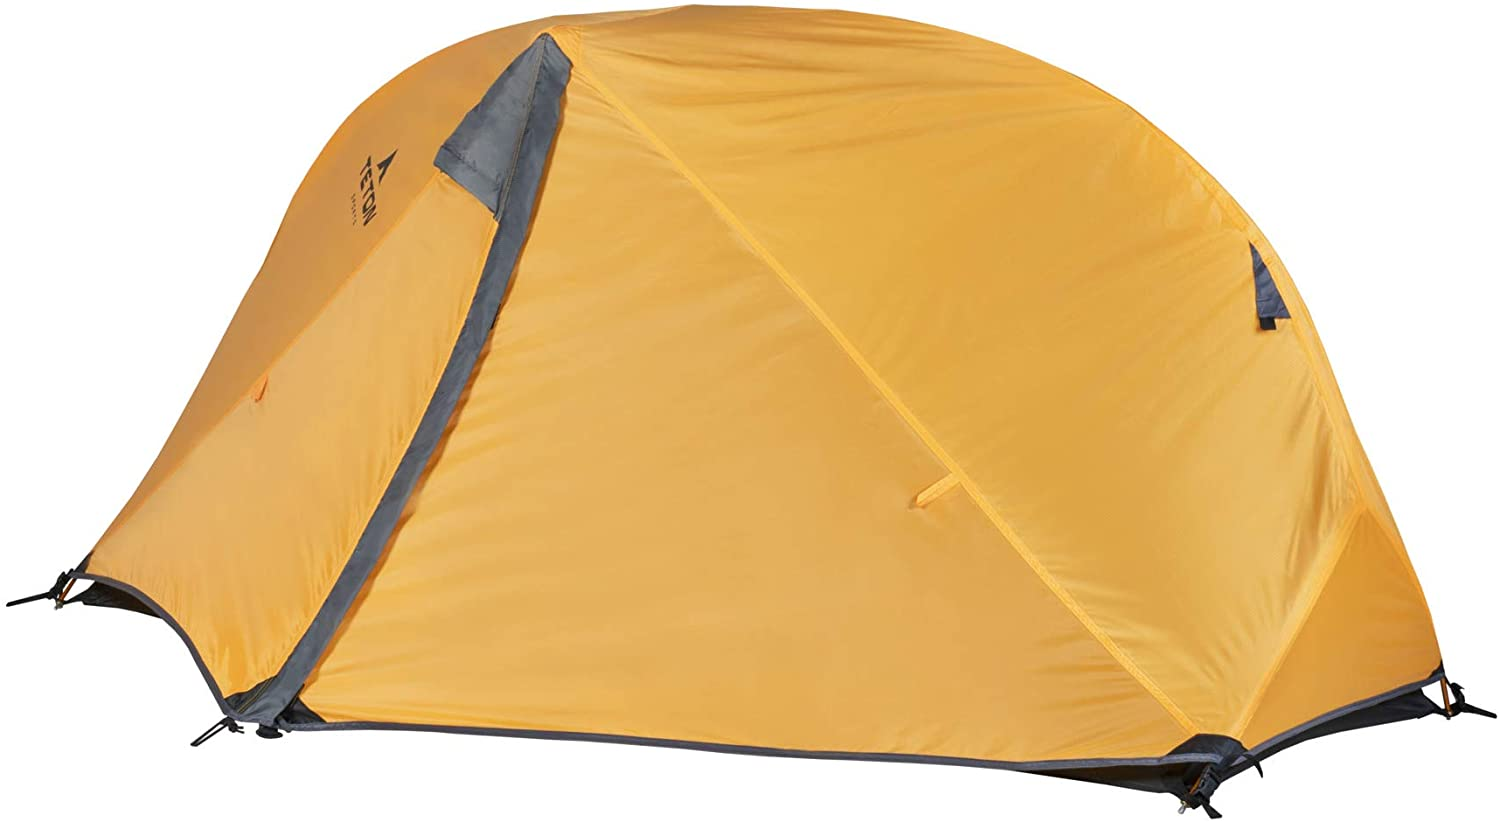 Top 10 Best Tents for High Winds 2020 Reviews 5